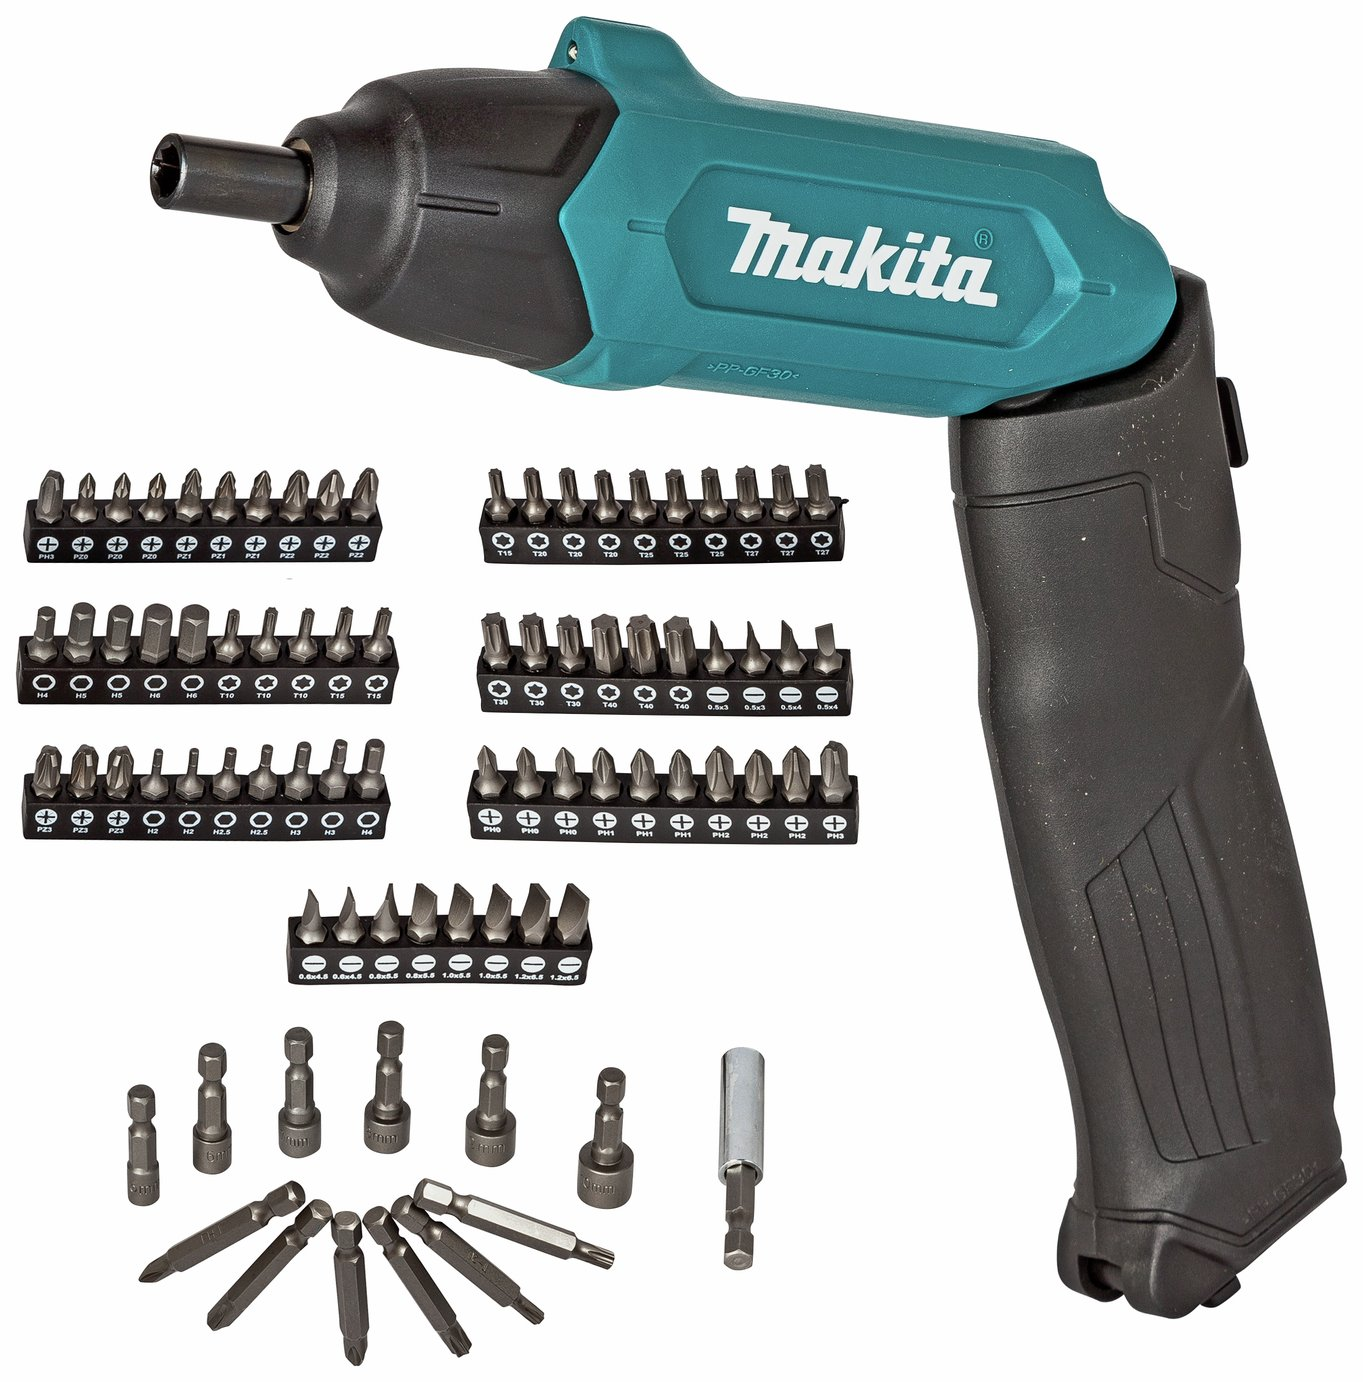 Image of Makita 3.6V Li-ion Cordless Screwdriver with 81 Accessories